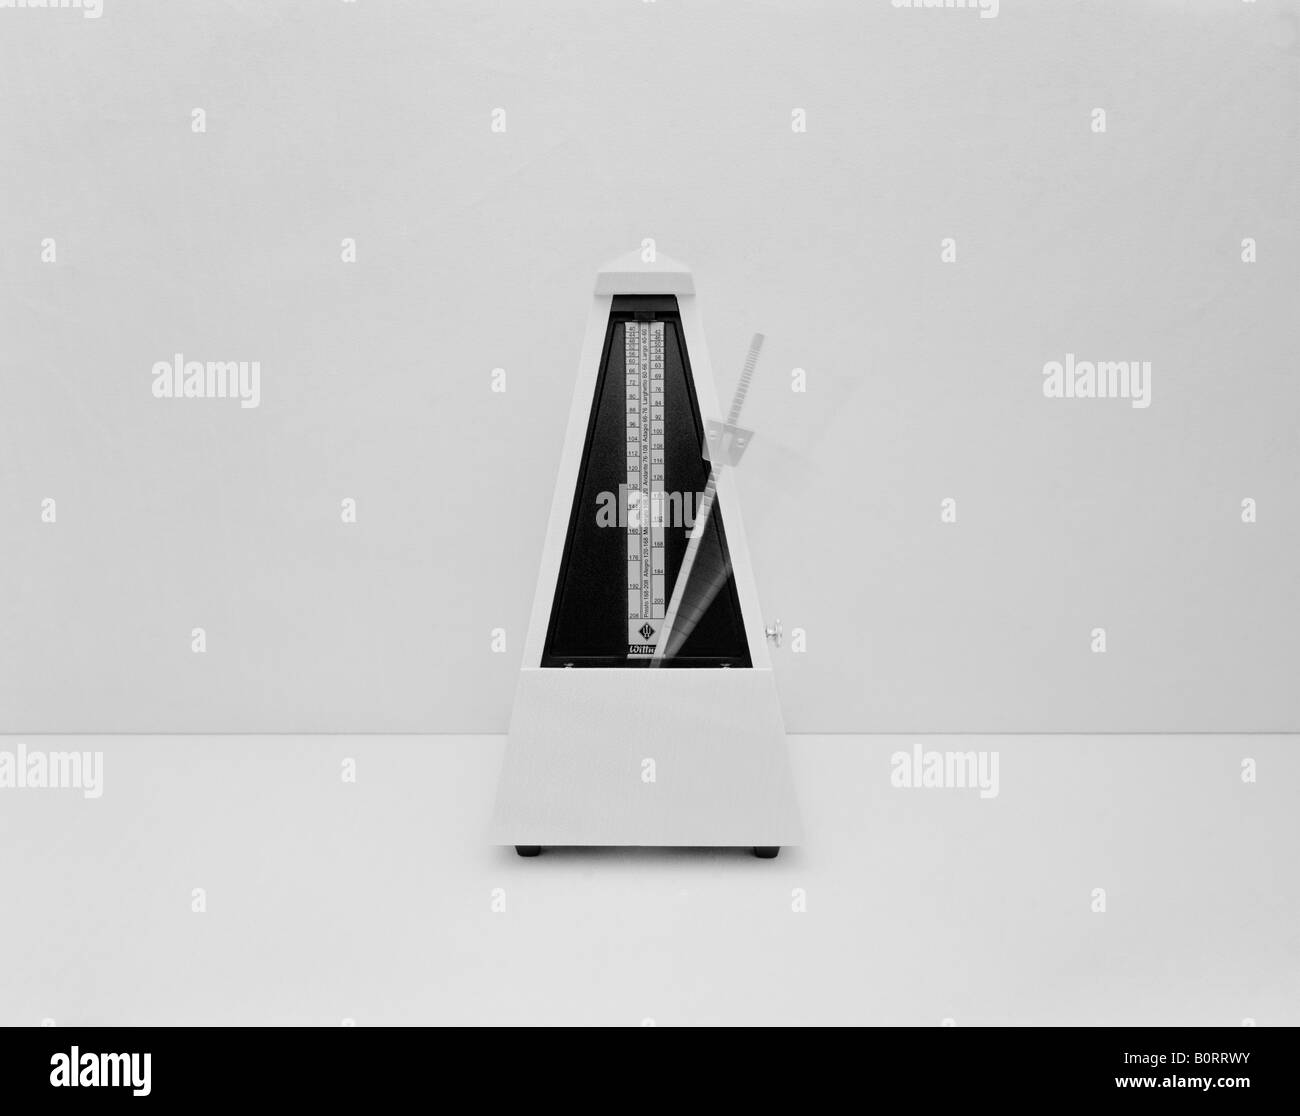 1 of a series of landscape monochrome images this one is of a moving metronome shot against a plain background - Stock Image